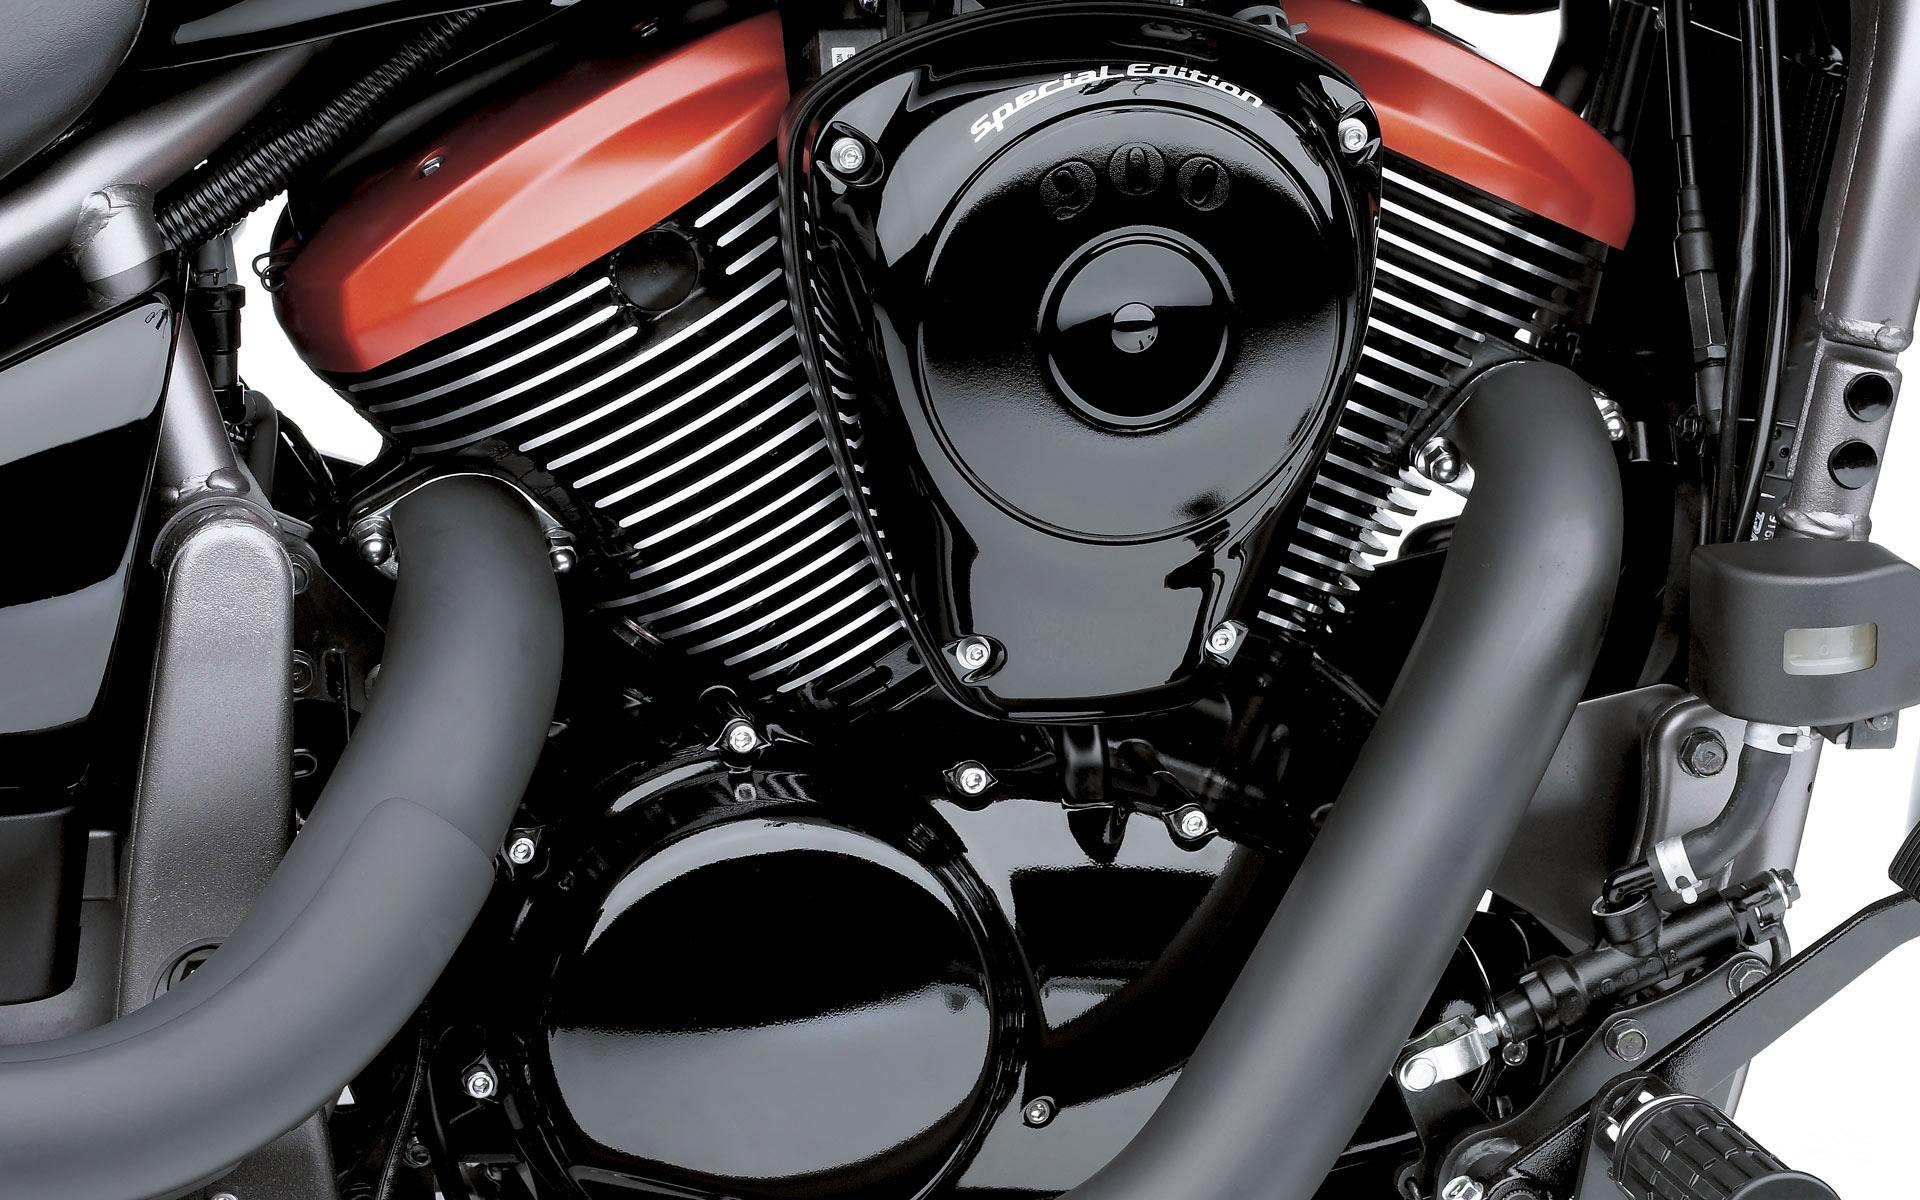 40 HD Engine Wallpapers, Engine Backgrounds & Engine Images